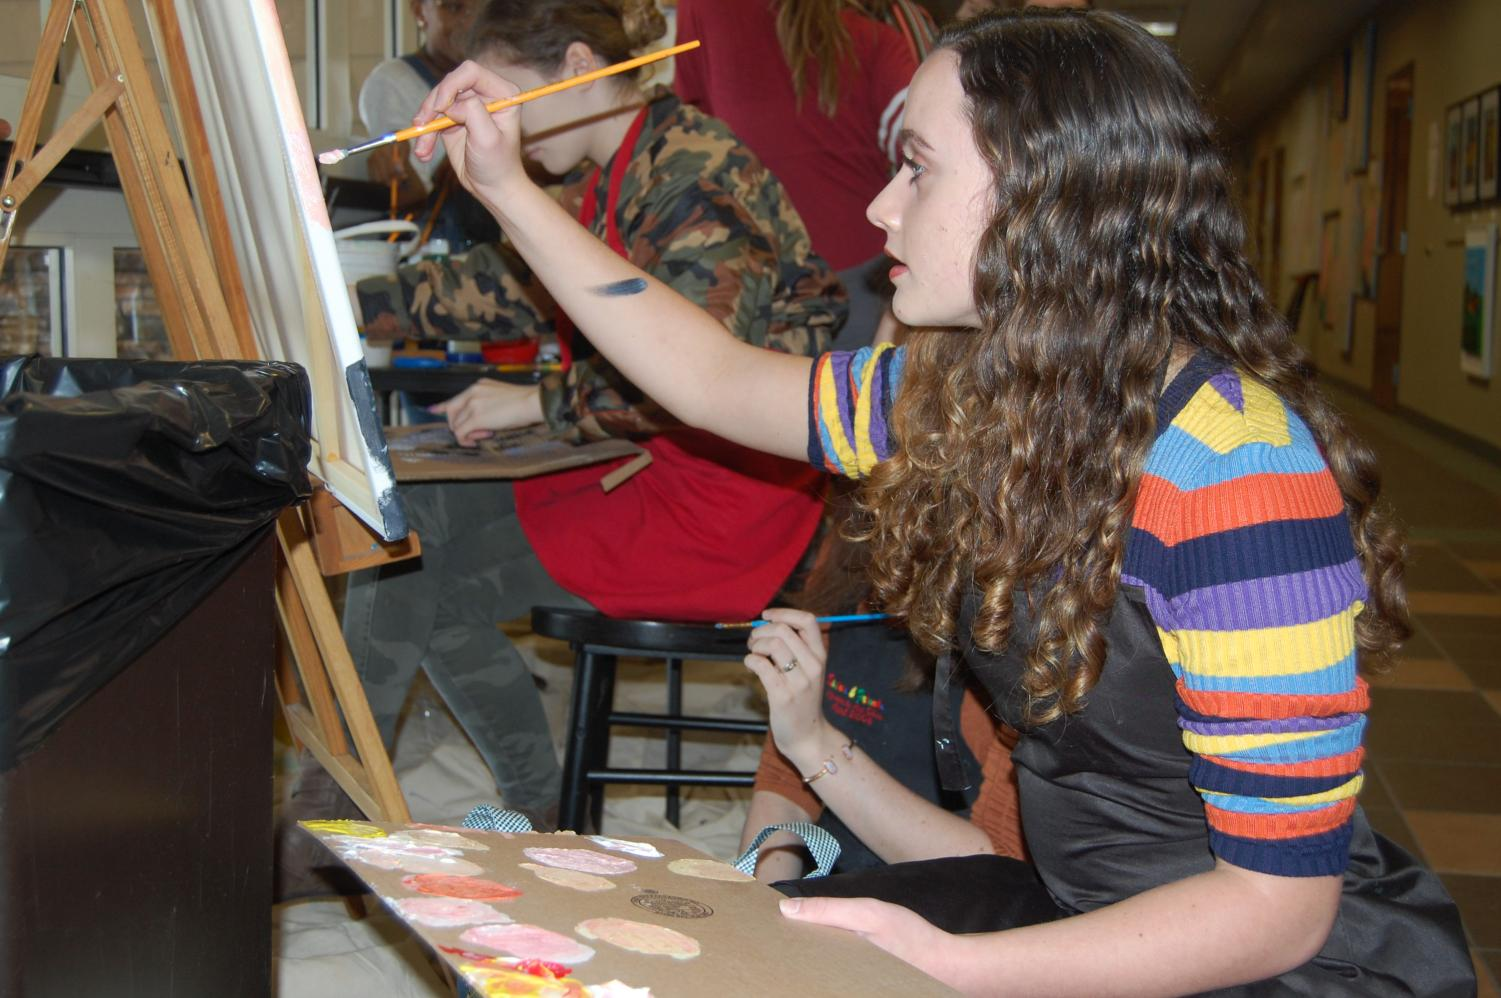 Student artist Chloe Lewis paints at the art show. This display was one of many student showcases.